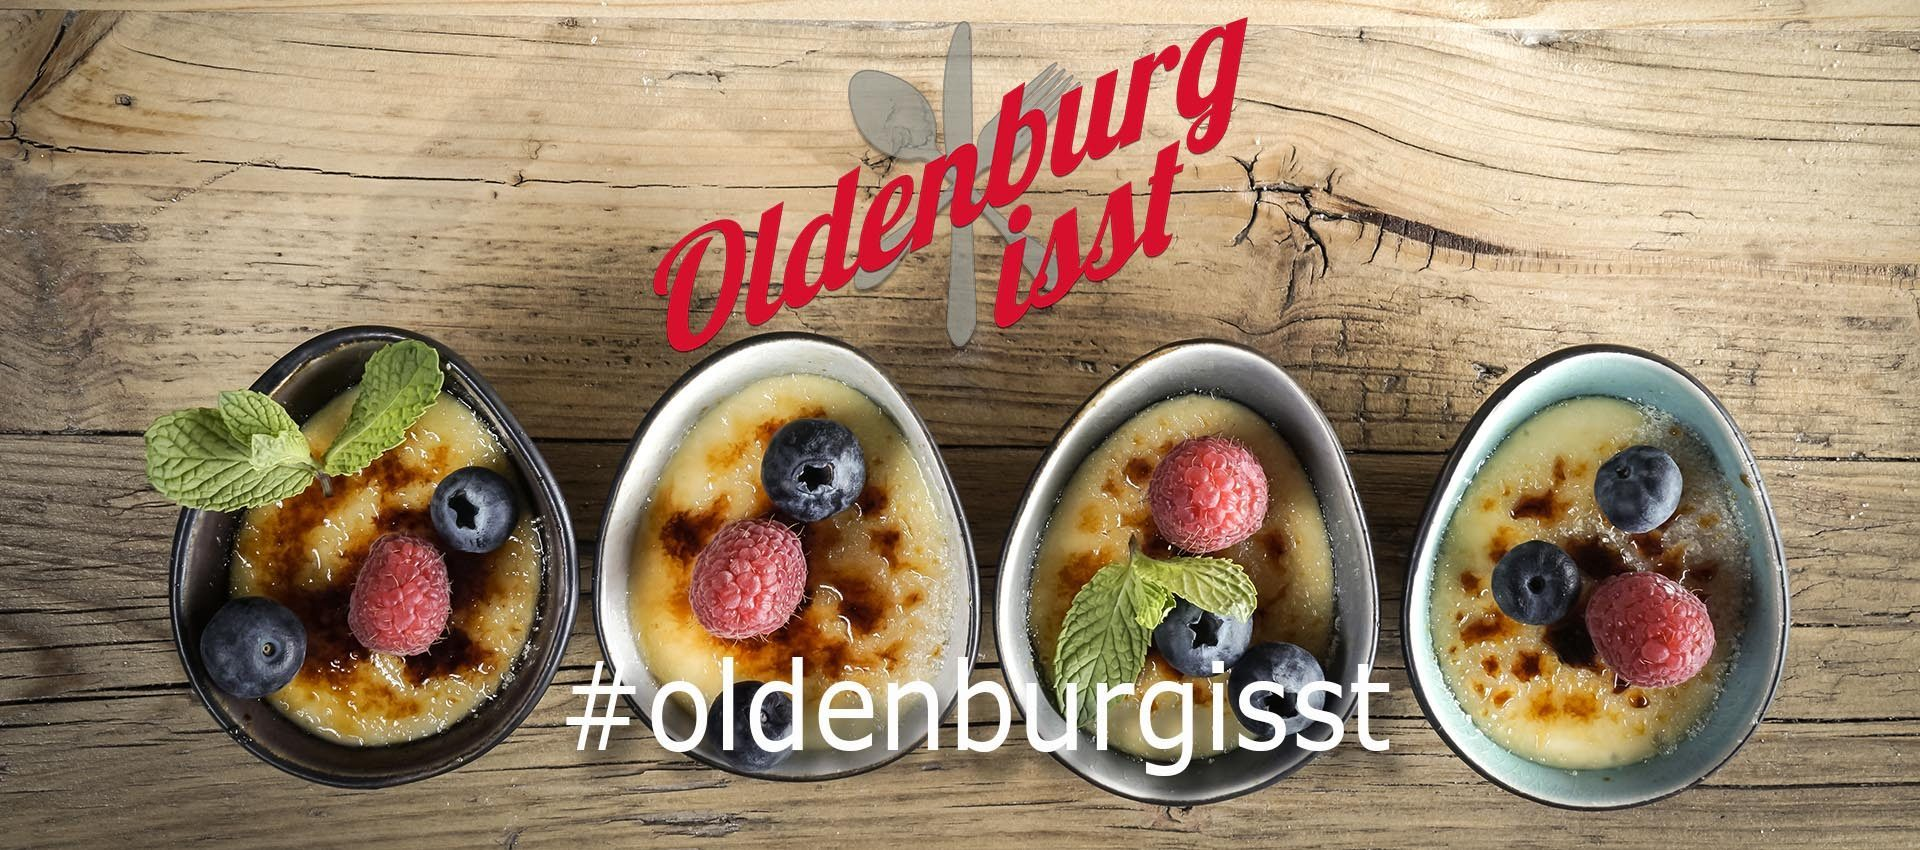 Oldenburg isst – Restaurants Oldenburg